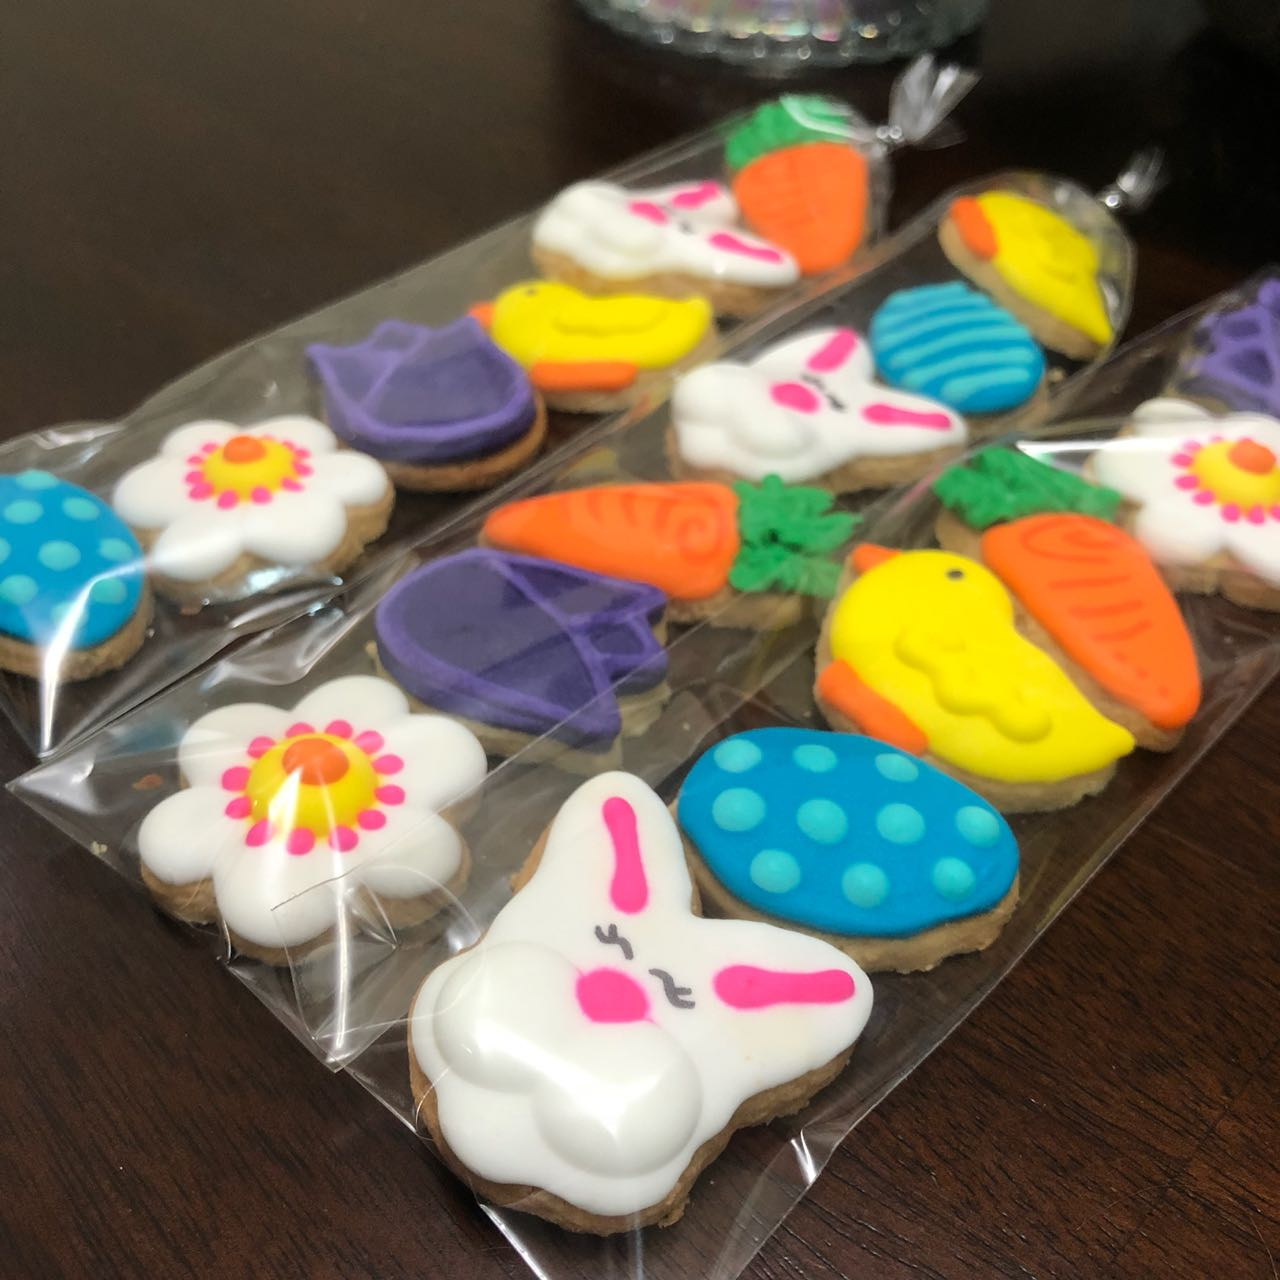 easter cookies. mini cookies. bunny. easter bunny. easter egg. chick. carrot. flower. blue, white, pink, yellow, orange, purple, green. happu easter. gift. food. cookies. decorated cookies.